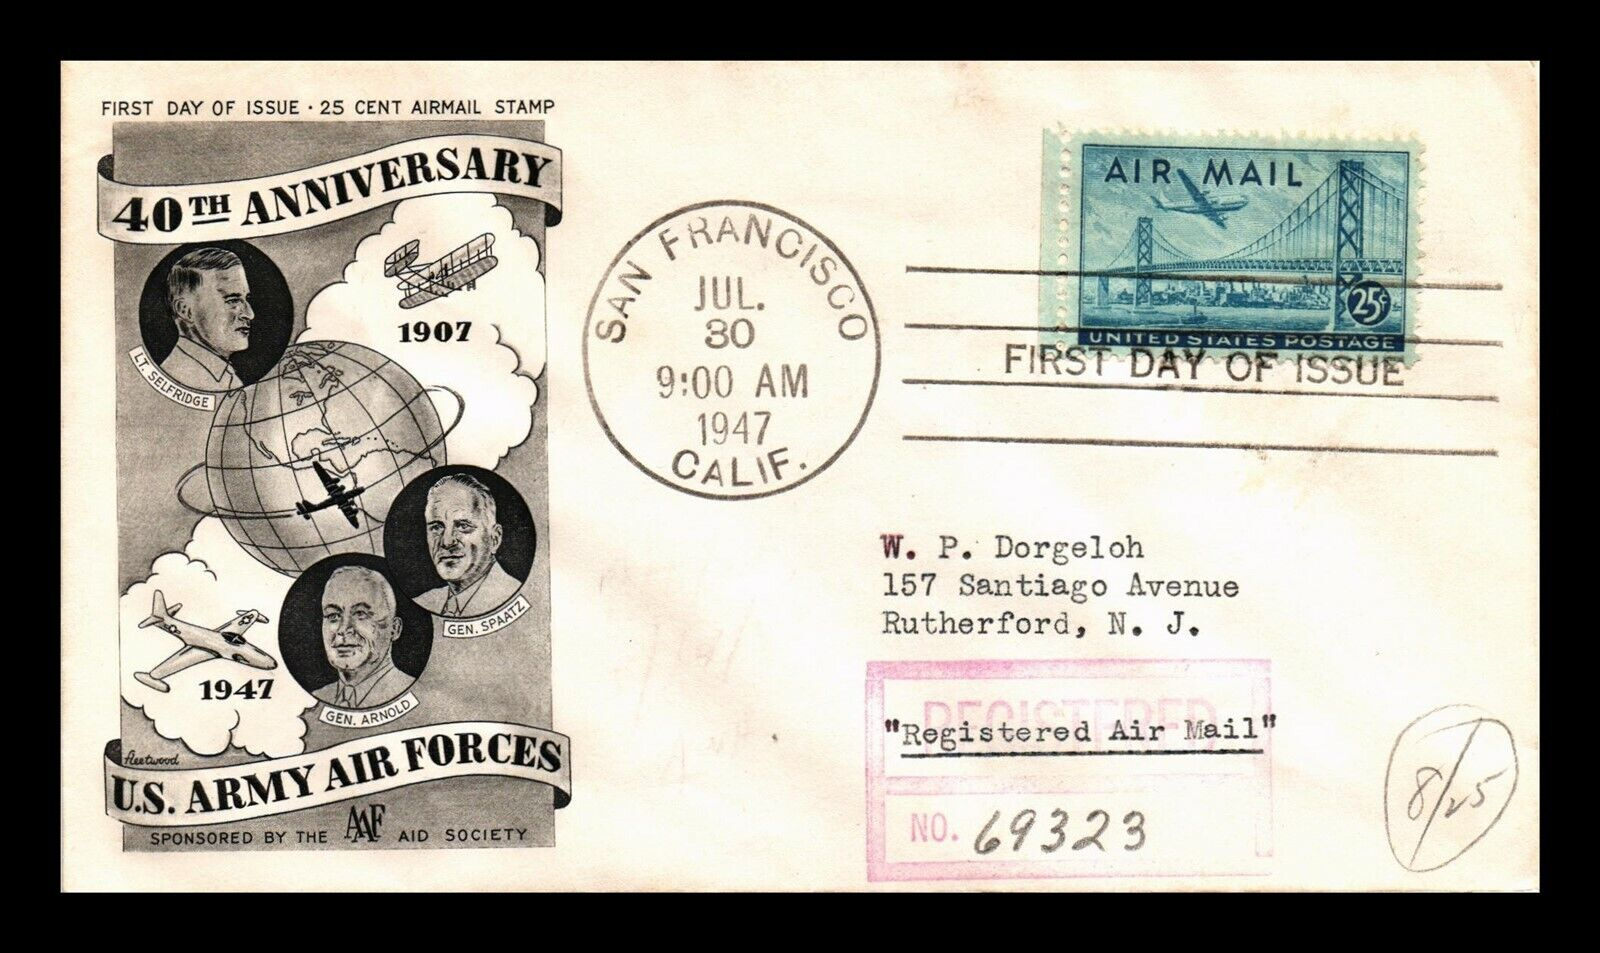 DR JIM STAMPS US ARMY AIR FORCES REGISTERED FDC AIR MAIL COVER SCOTT C36 - $1.32